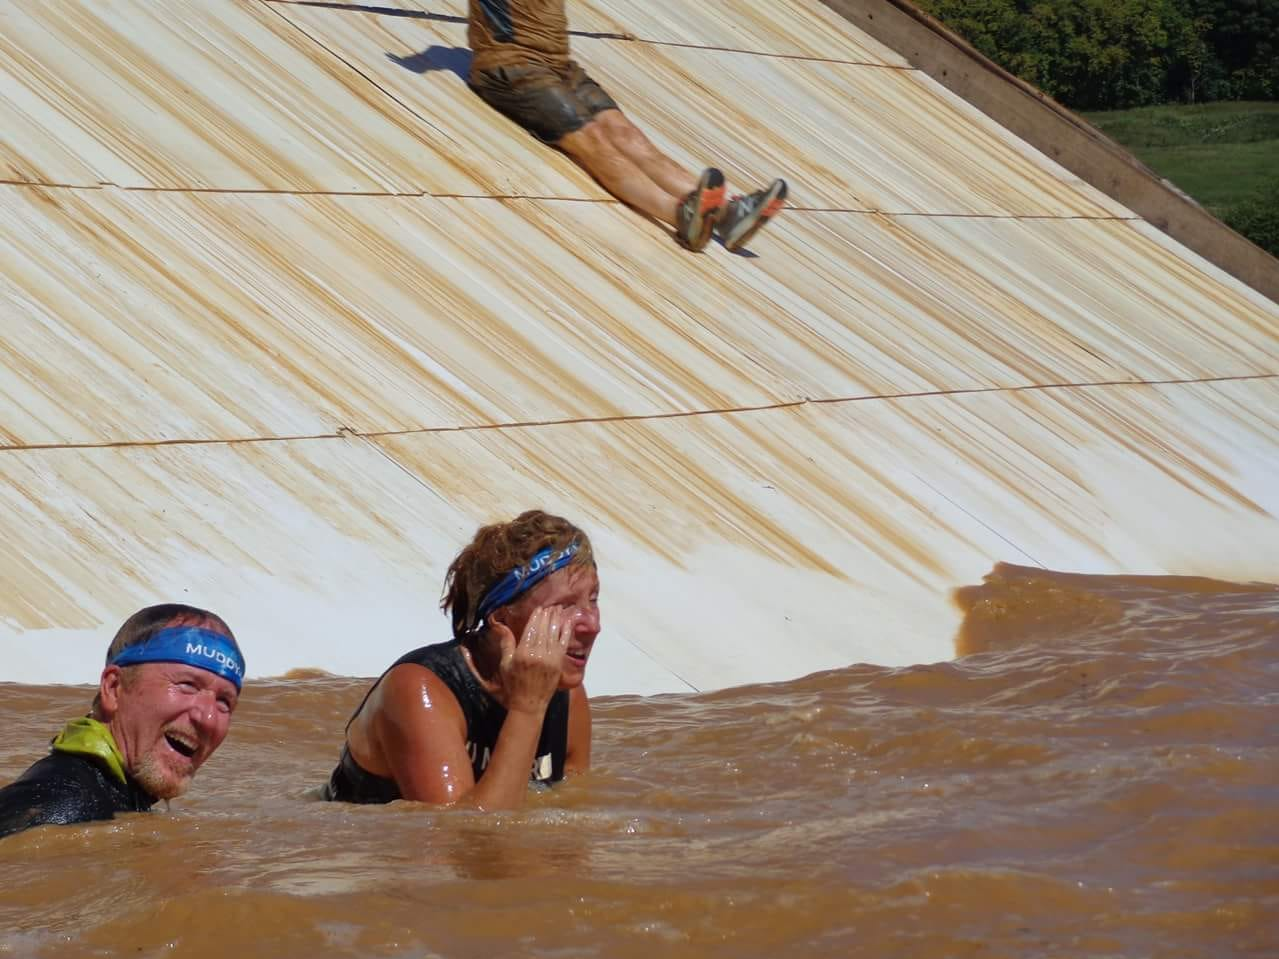 Bruce Ippel and a fellow Tough Mudder competitor enjoy a dip in muddy water during the summertime competition.